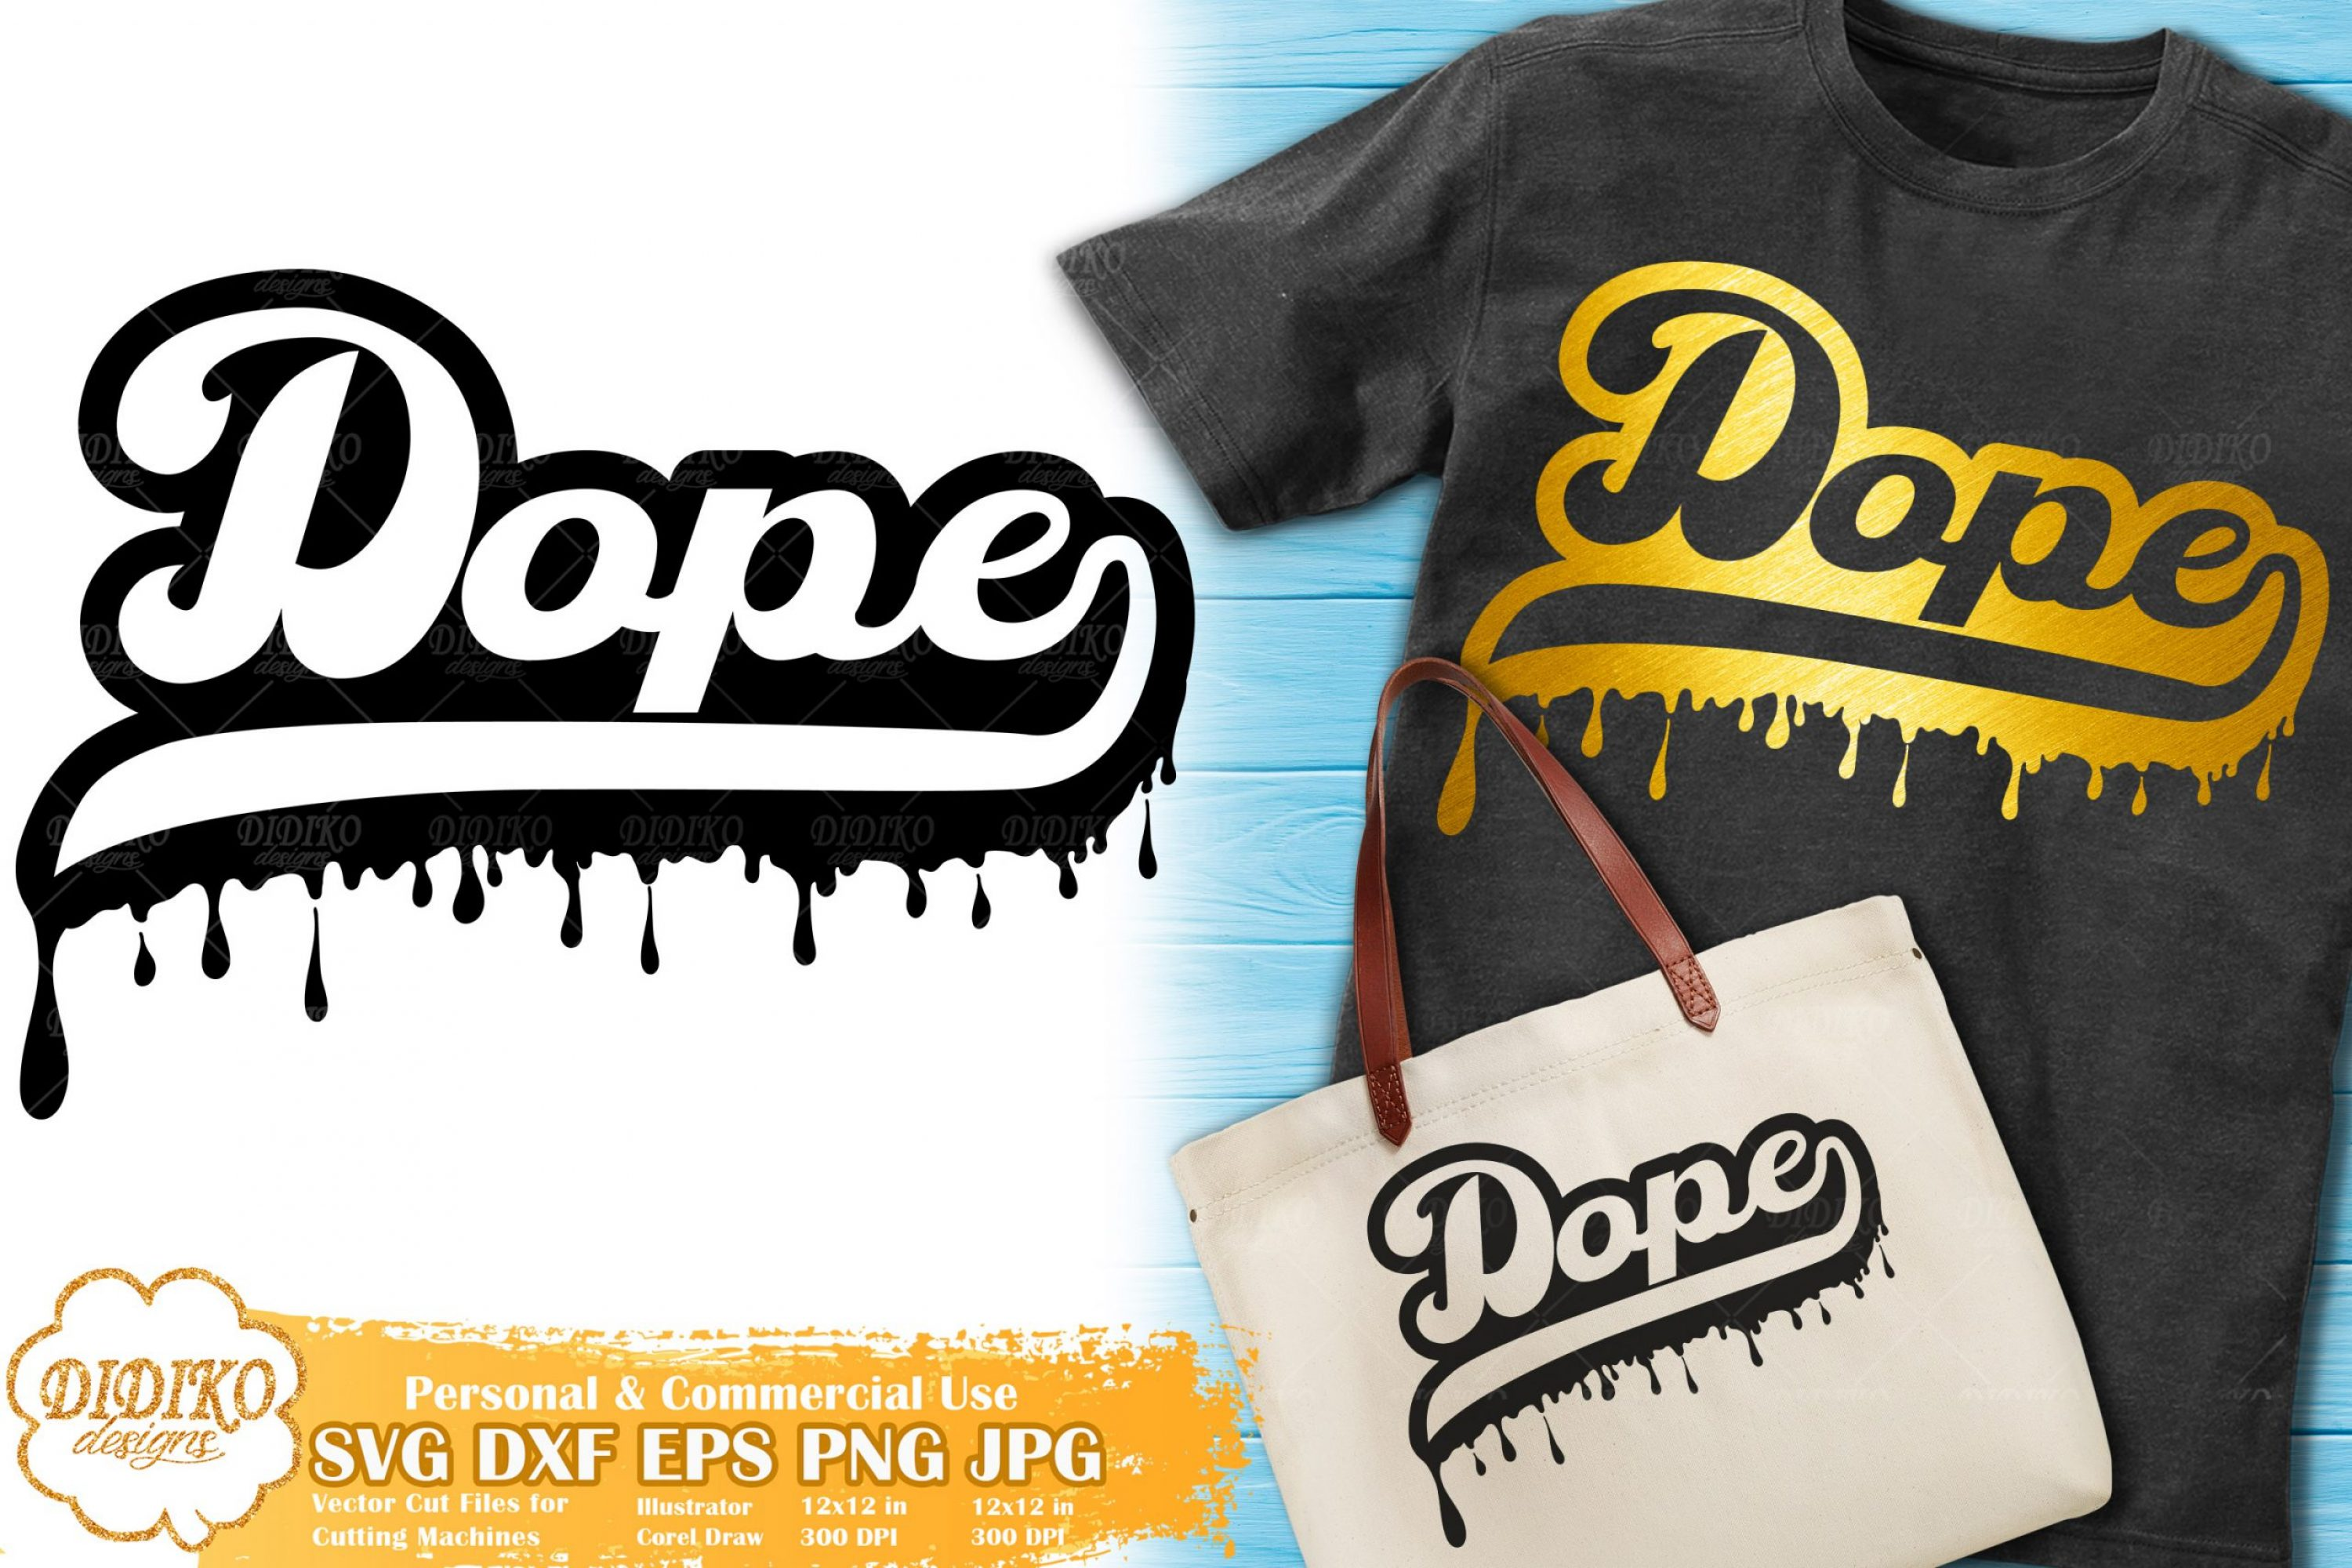 Dope Dripping SVG #1 | Black Woman SVG Cut File